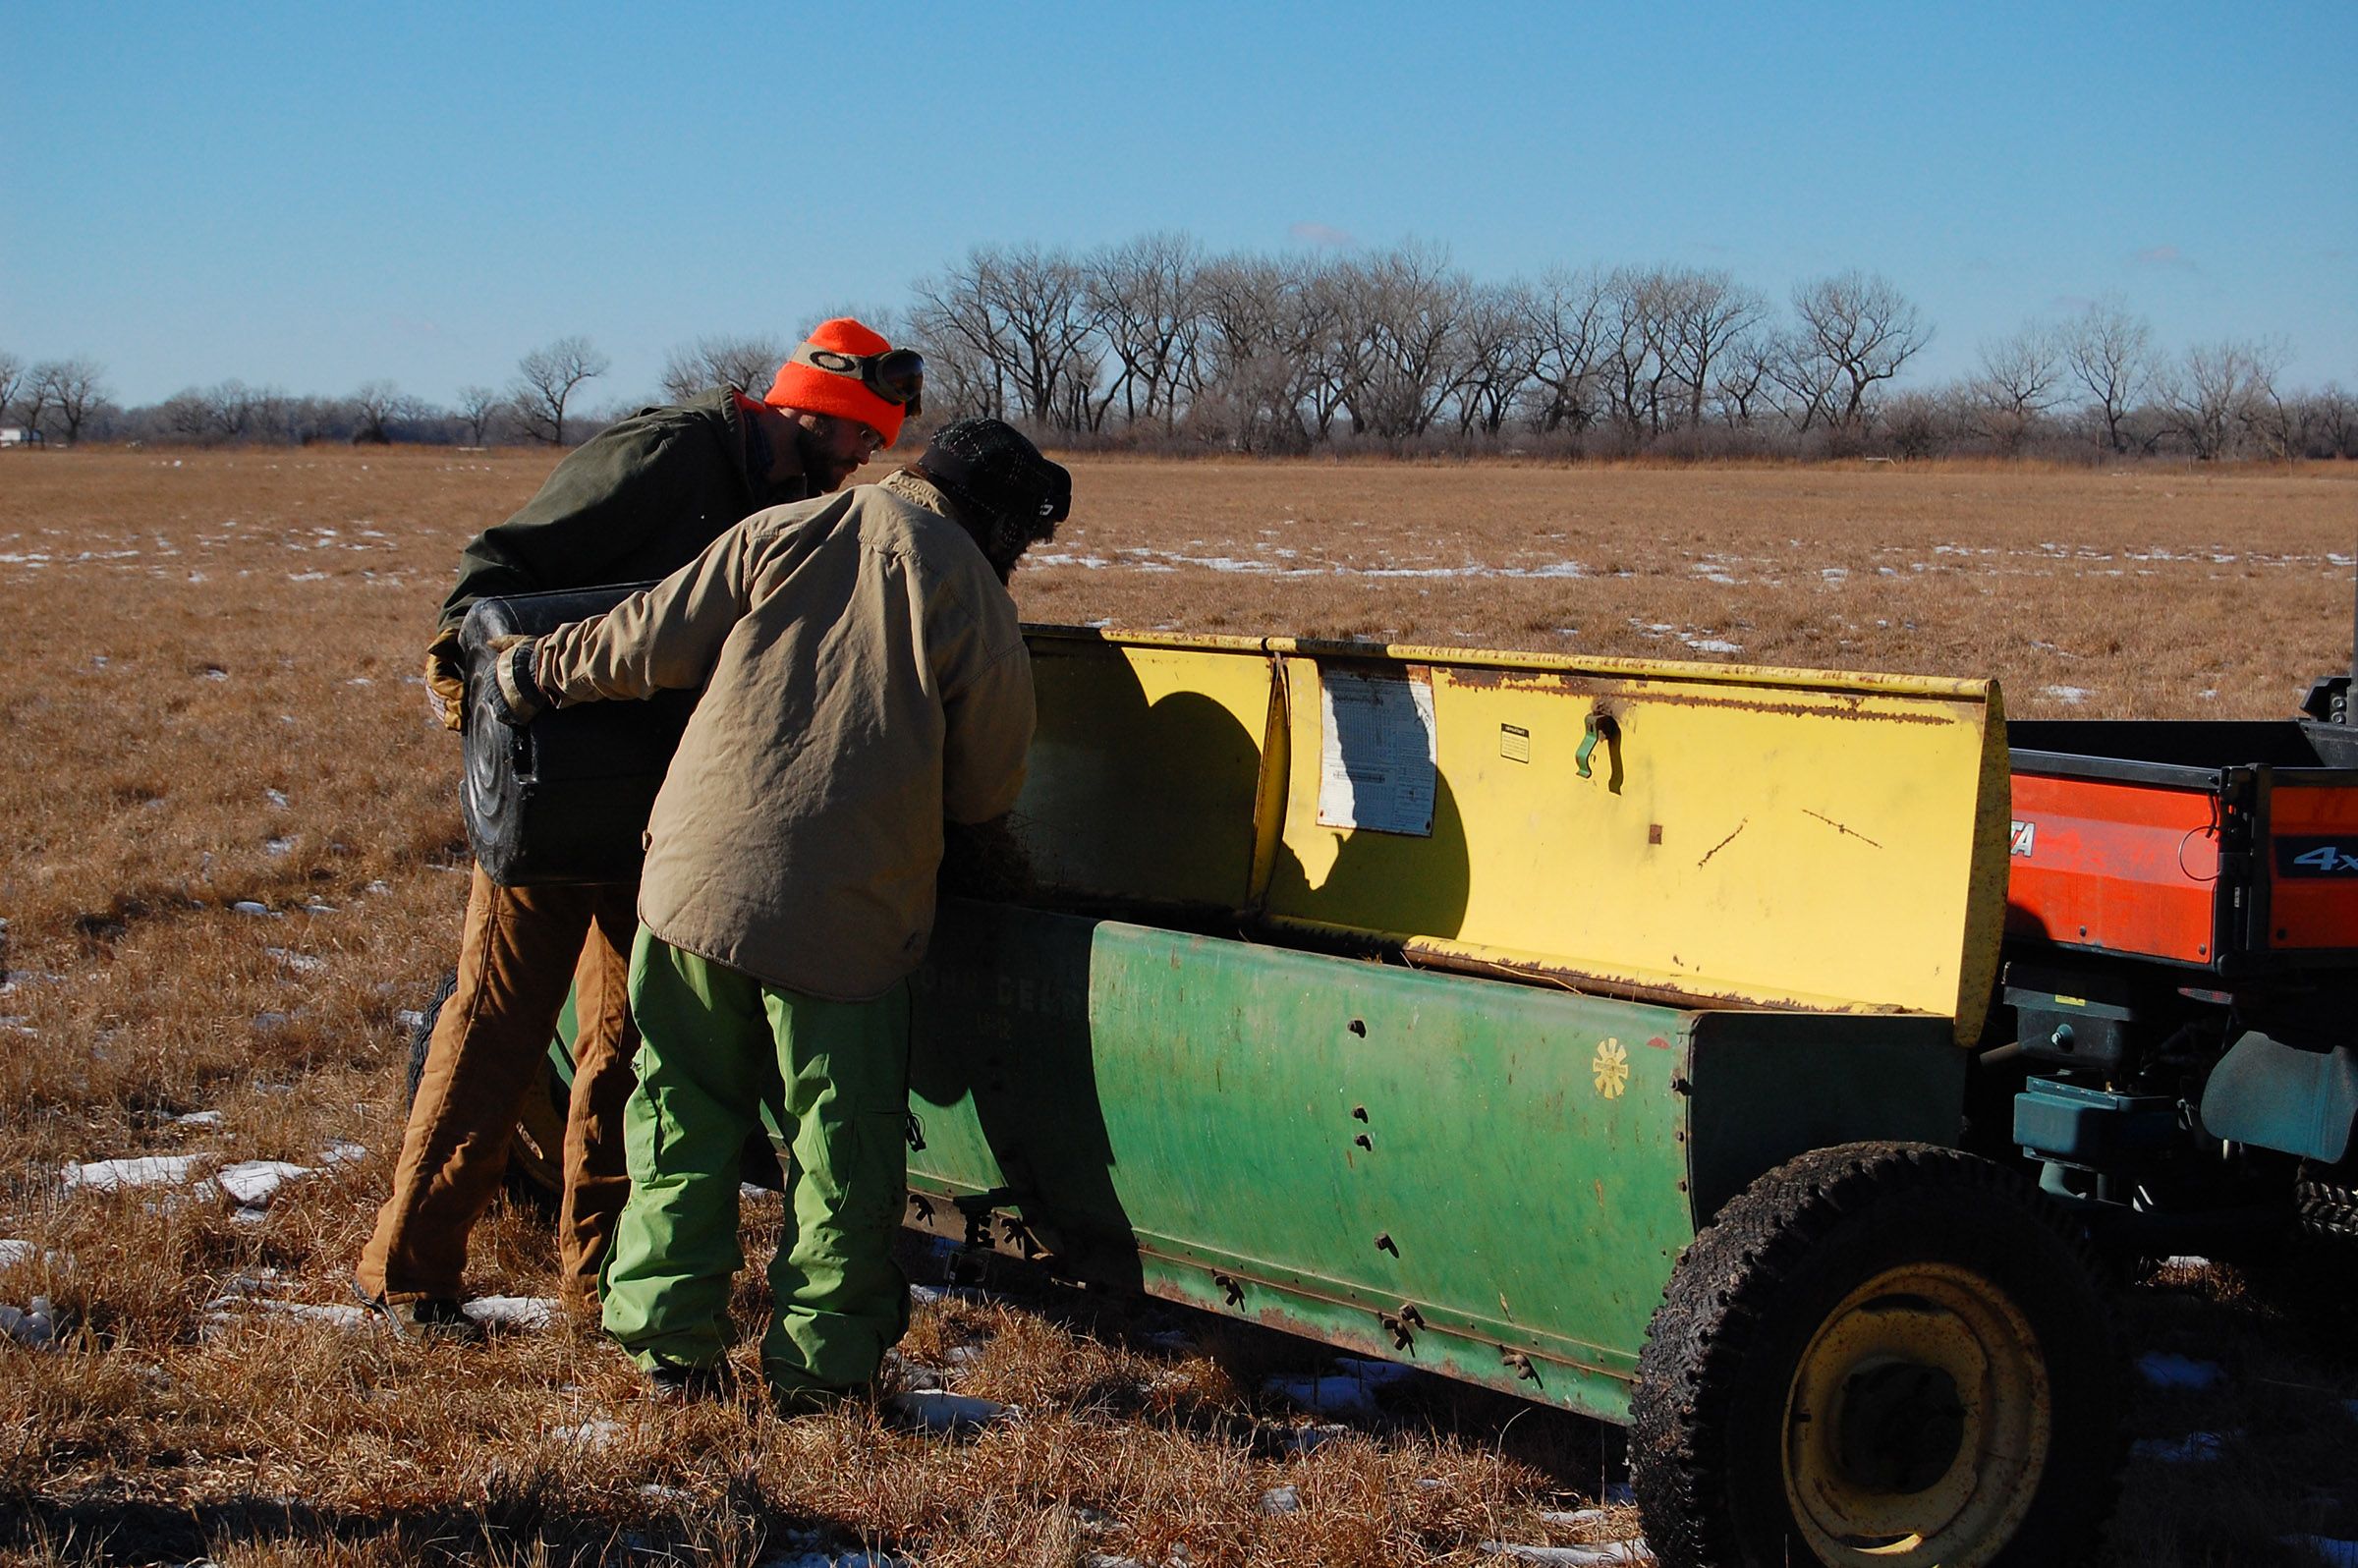 TNC fellows Jasmine Cutter and Dillon Blankenship load the mixed seed into the spreader. (Ariana Brocious)